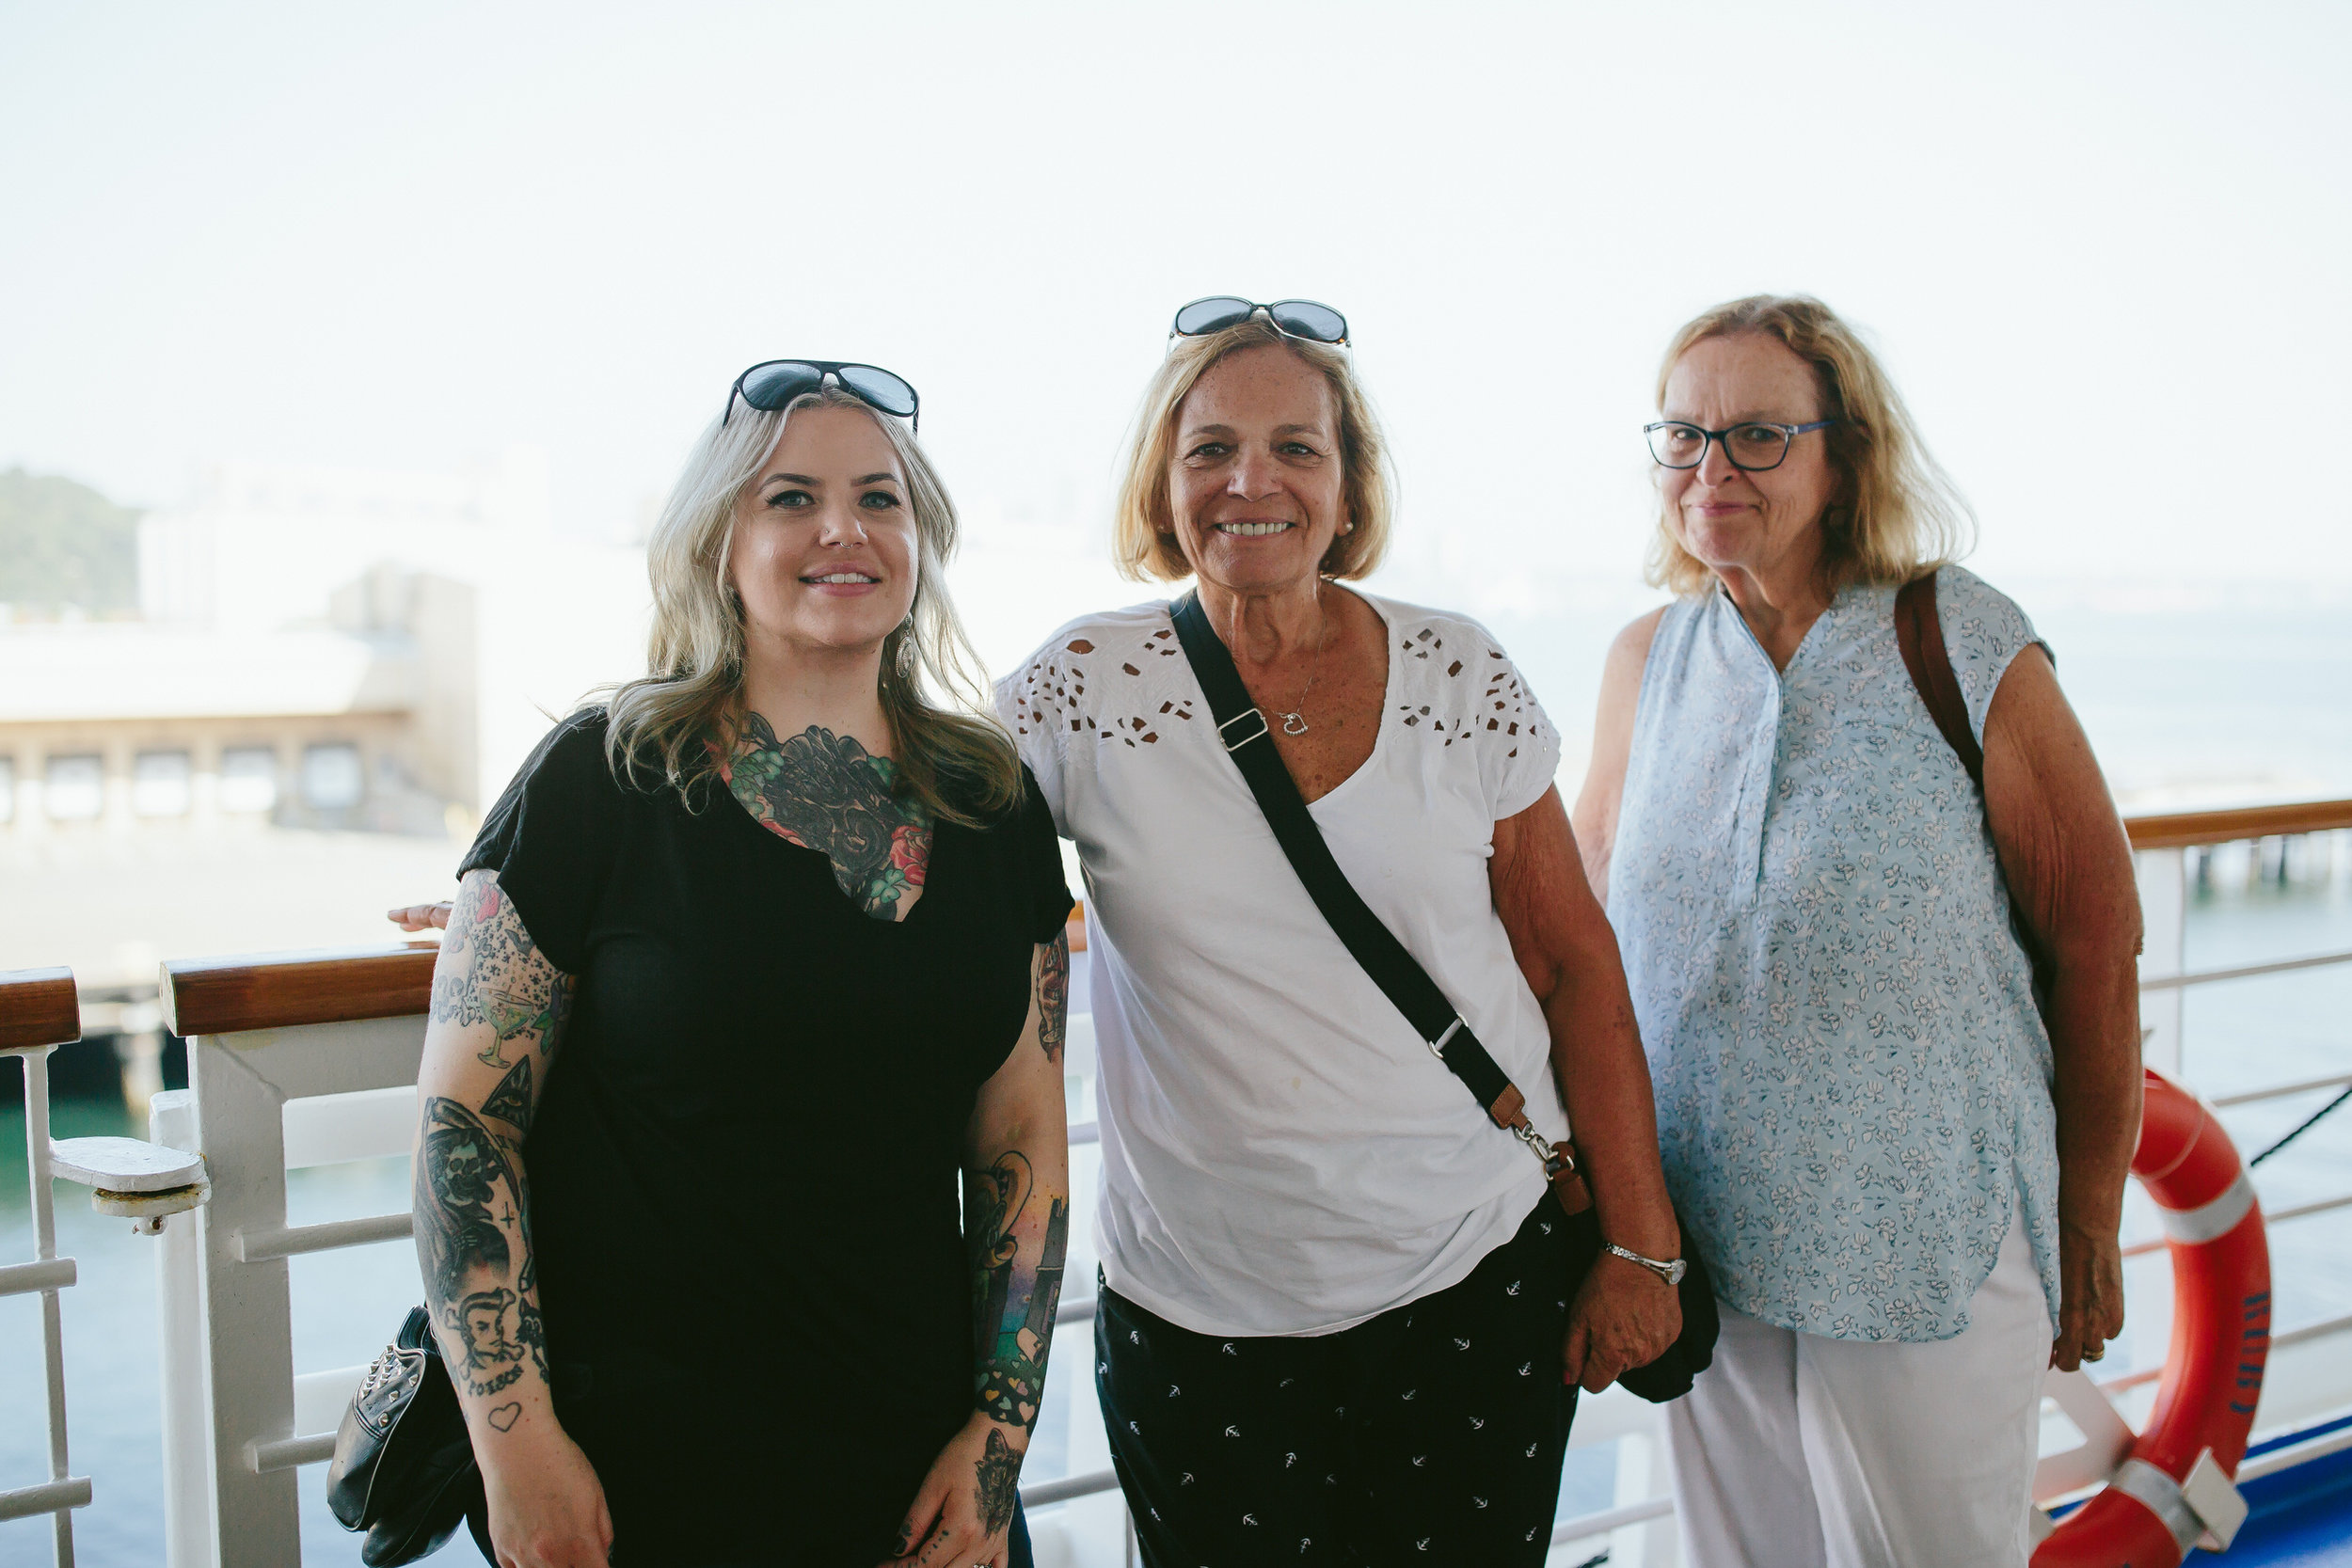 cousin mom aunt on ruby princess cruise to alaska